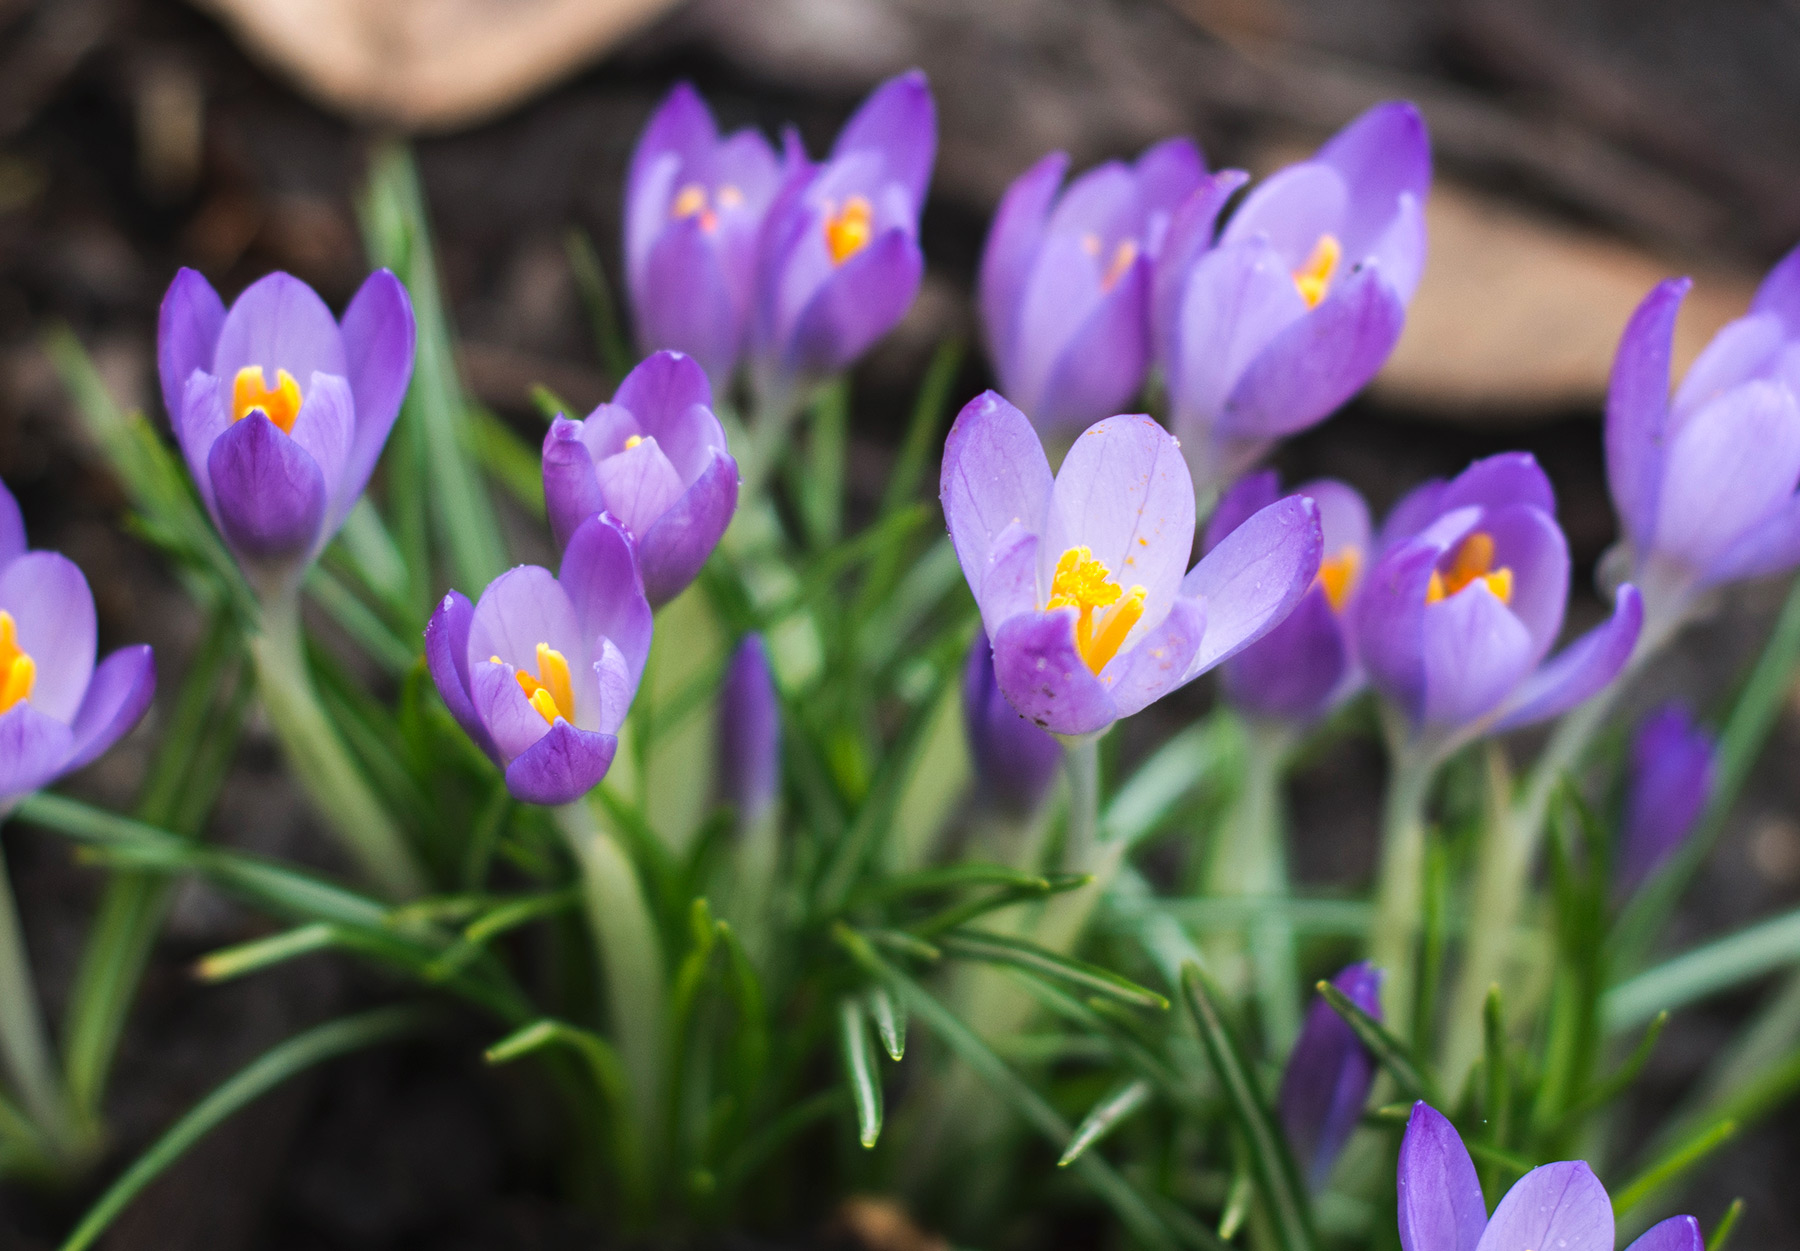 Clump of purple crocus